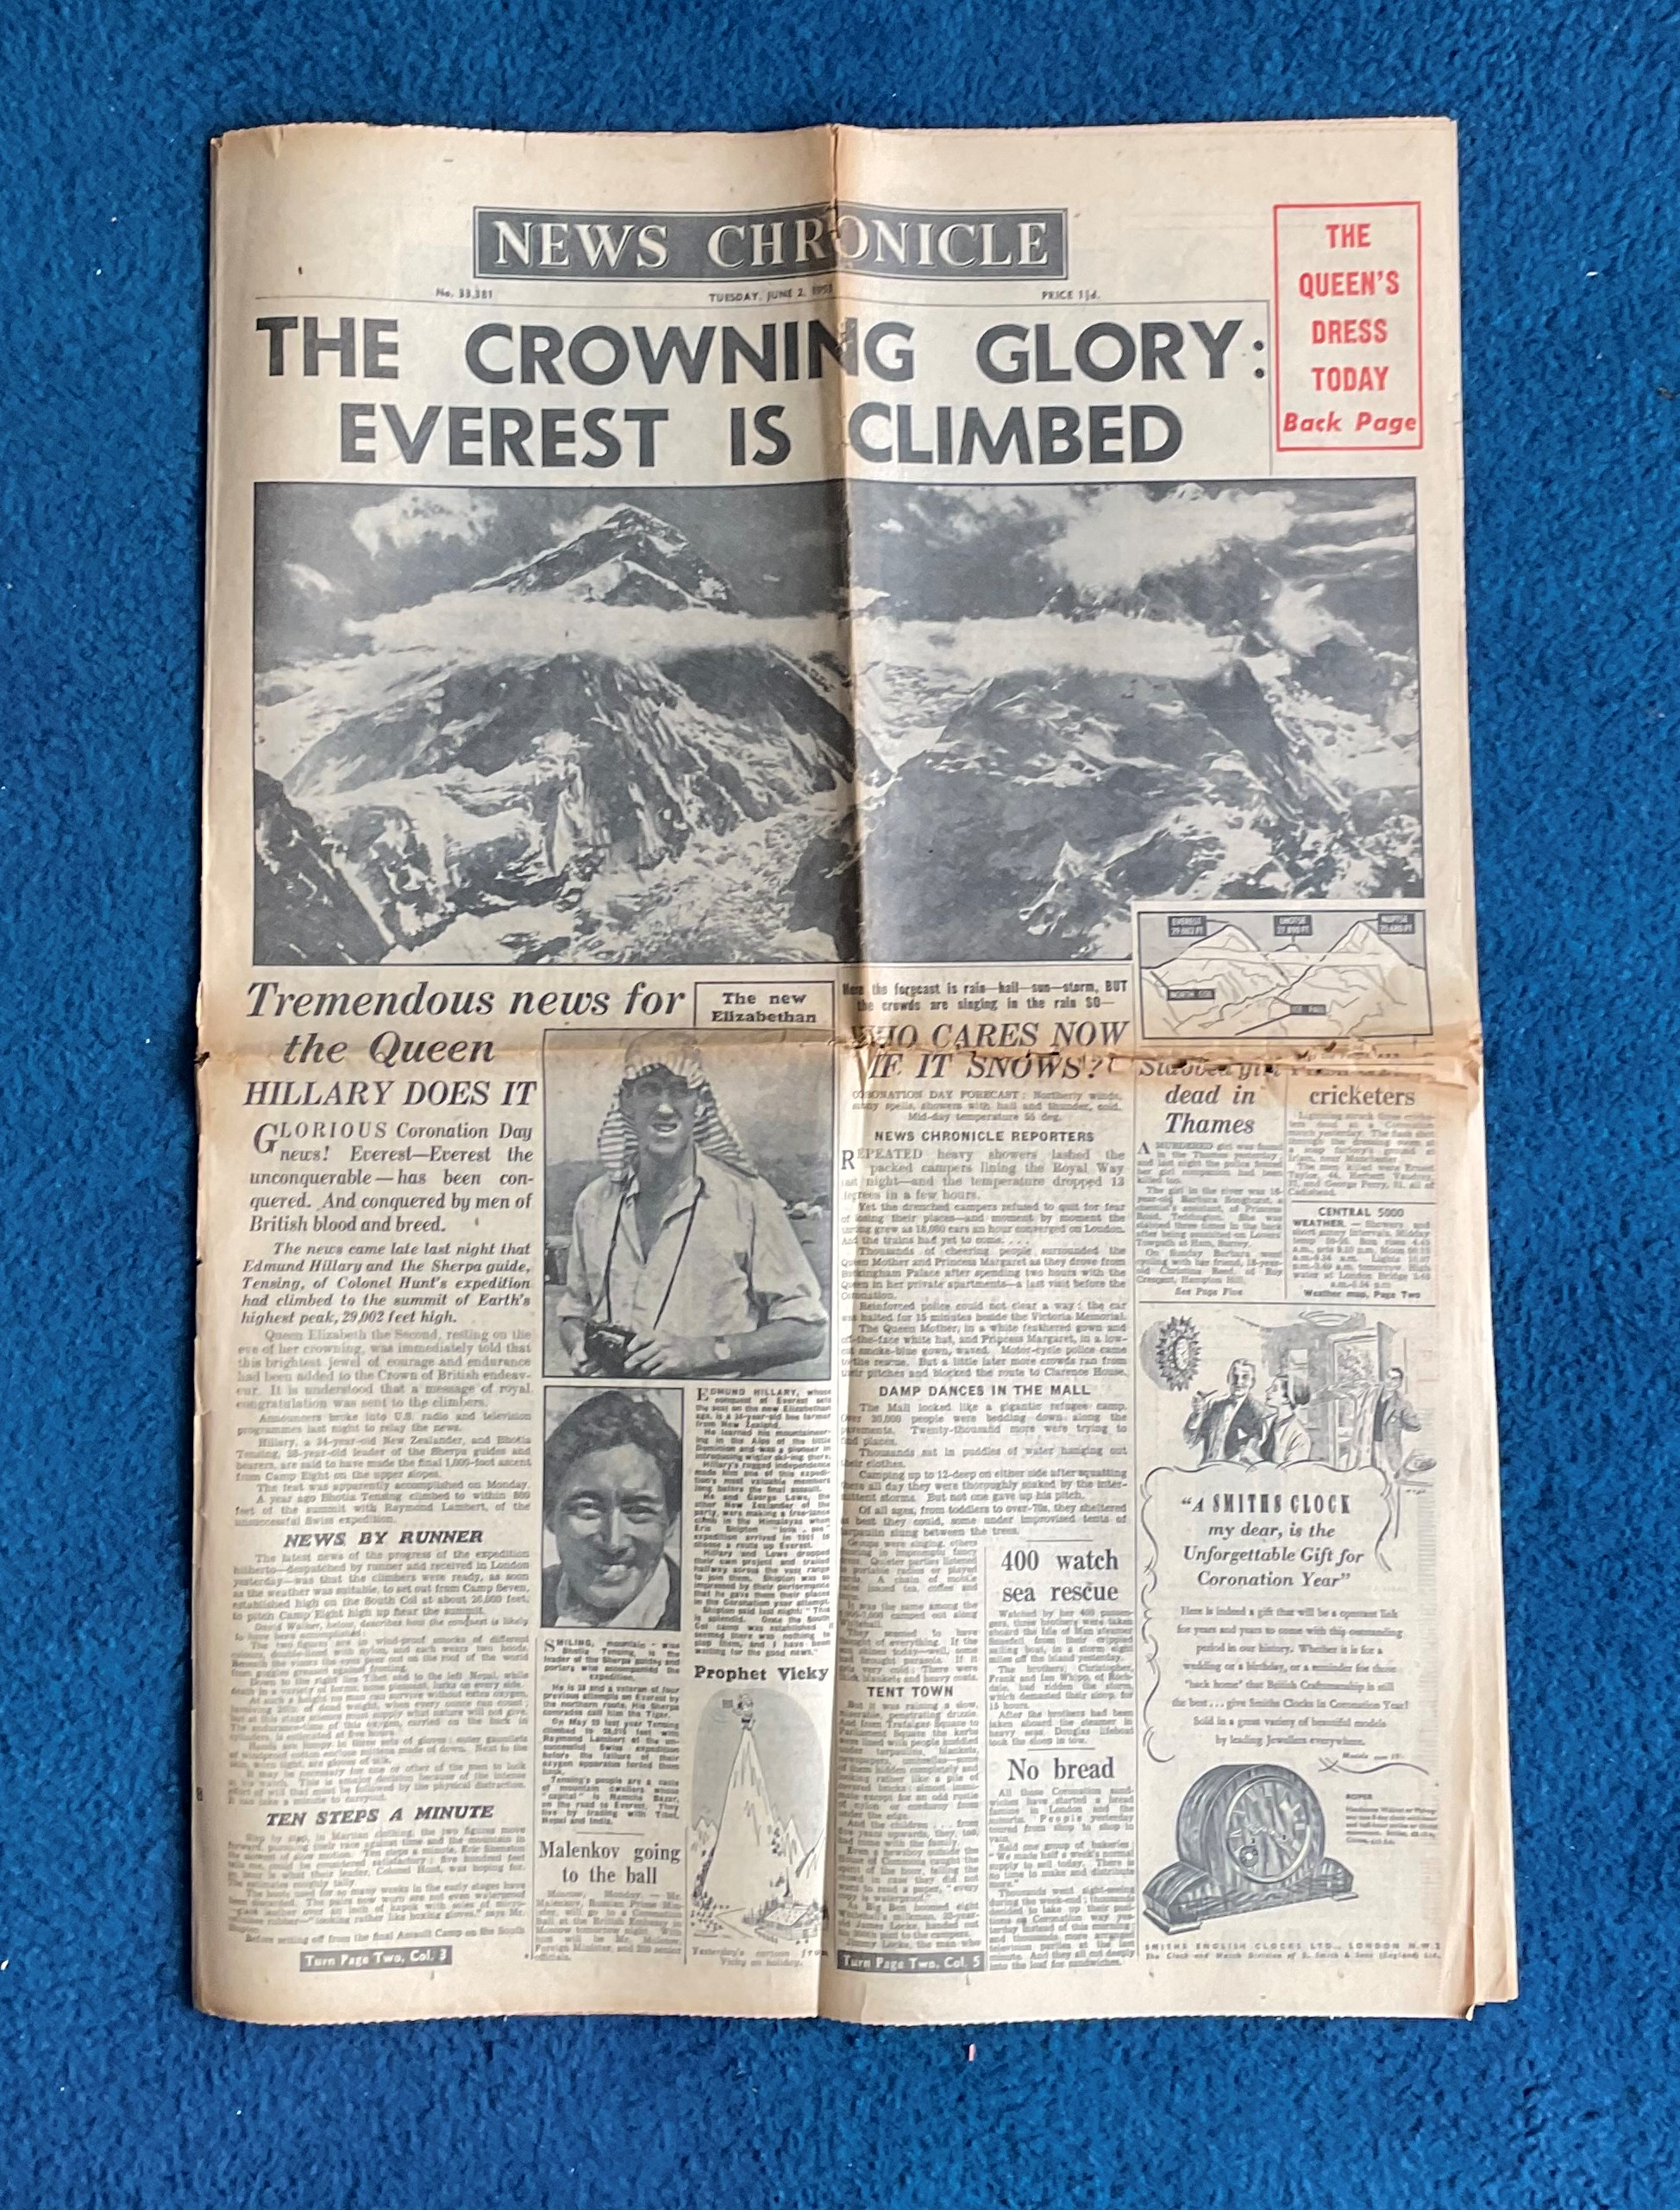 1953 News Chronicle The Crowning Glory Ever is Climbed Celebrating the 29,000 Foot Ascent of Ever,